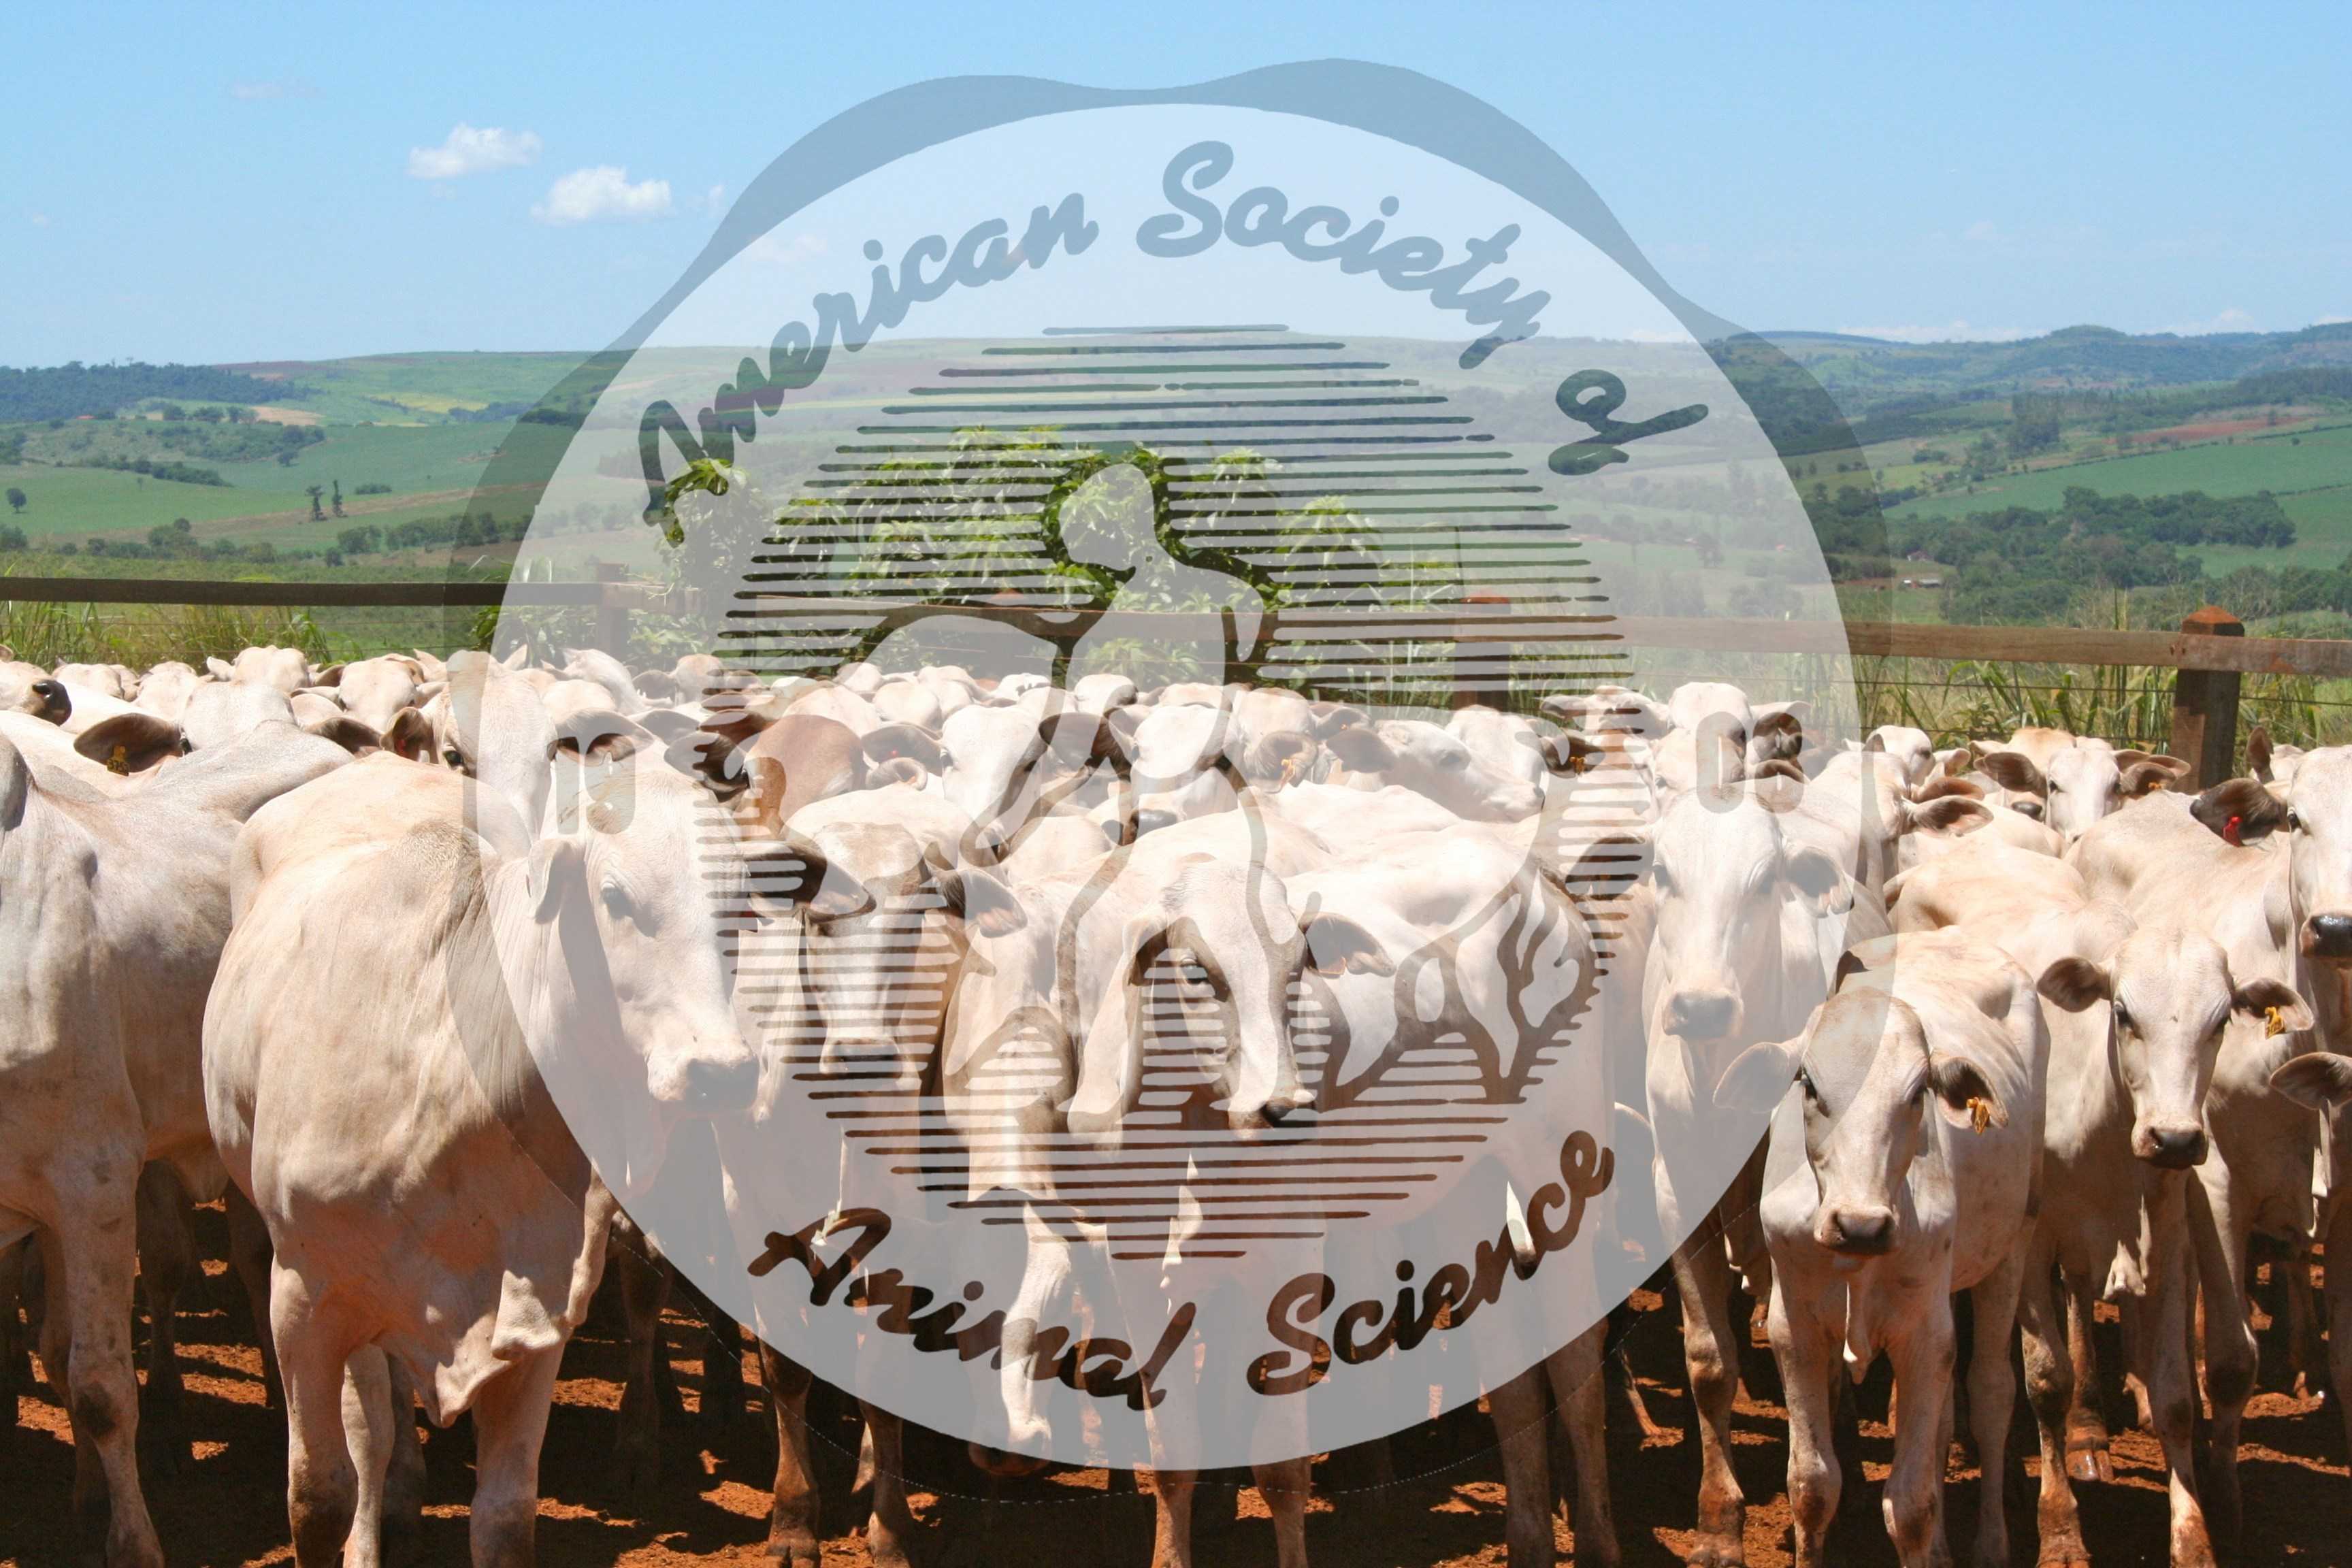 A group of Nelore yearling heifers.  Nelore is a breed of Bos indicus (Zebu).  This picture was taken in Brazil, who is the largest breeder of Nelore cattle.